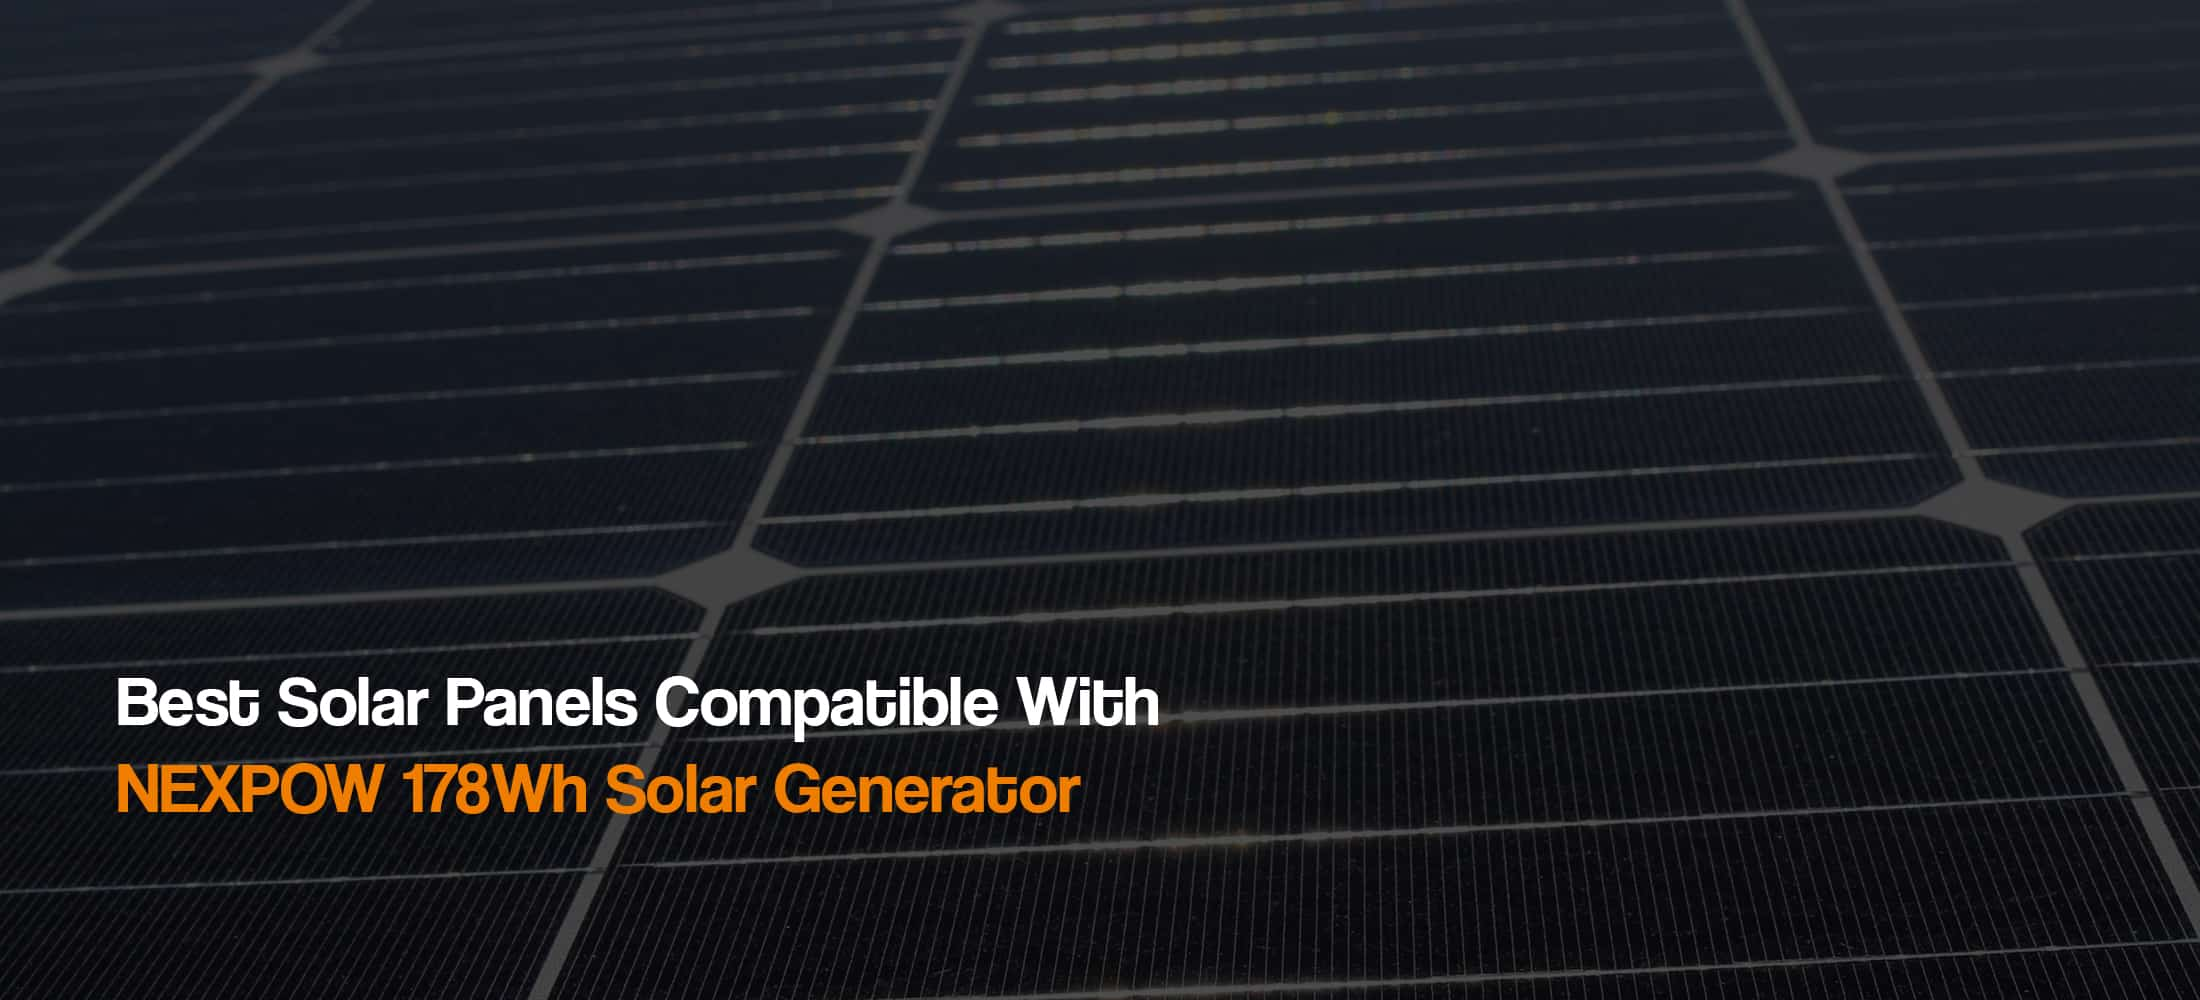 best-solar-panels-compatible-with-nexpow-solar-generators-power-stations-the-solar-addict